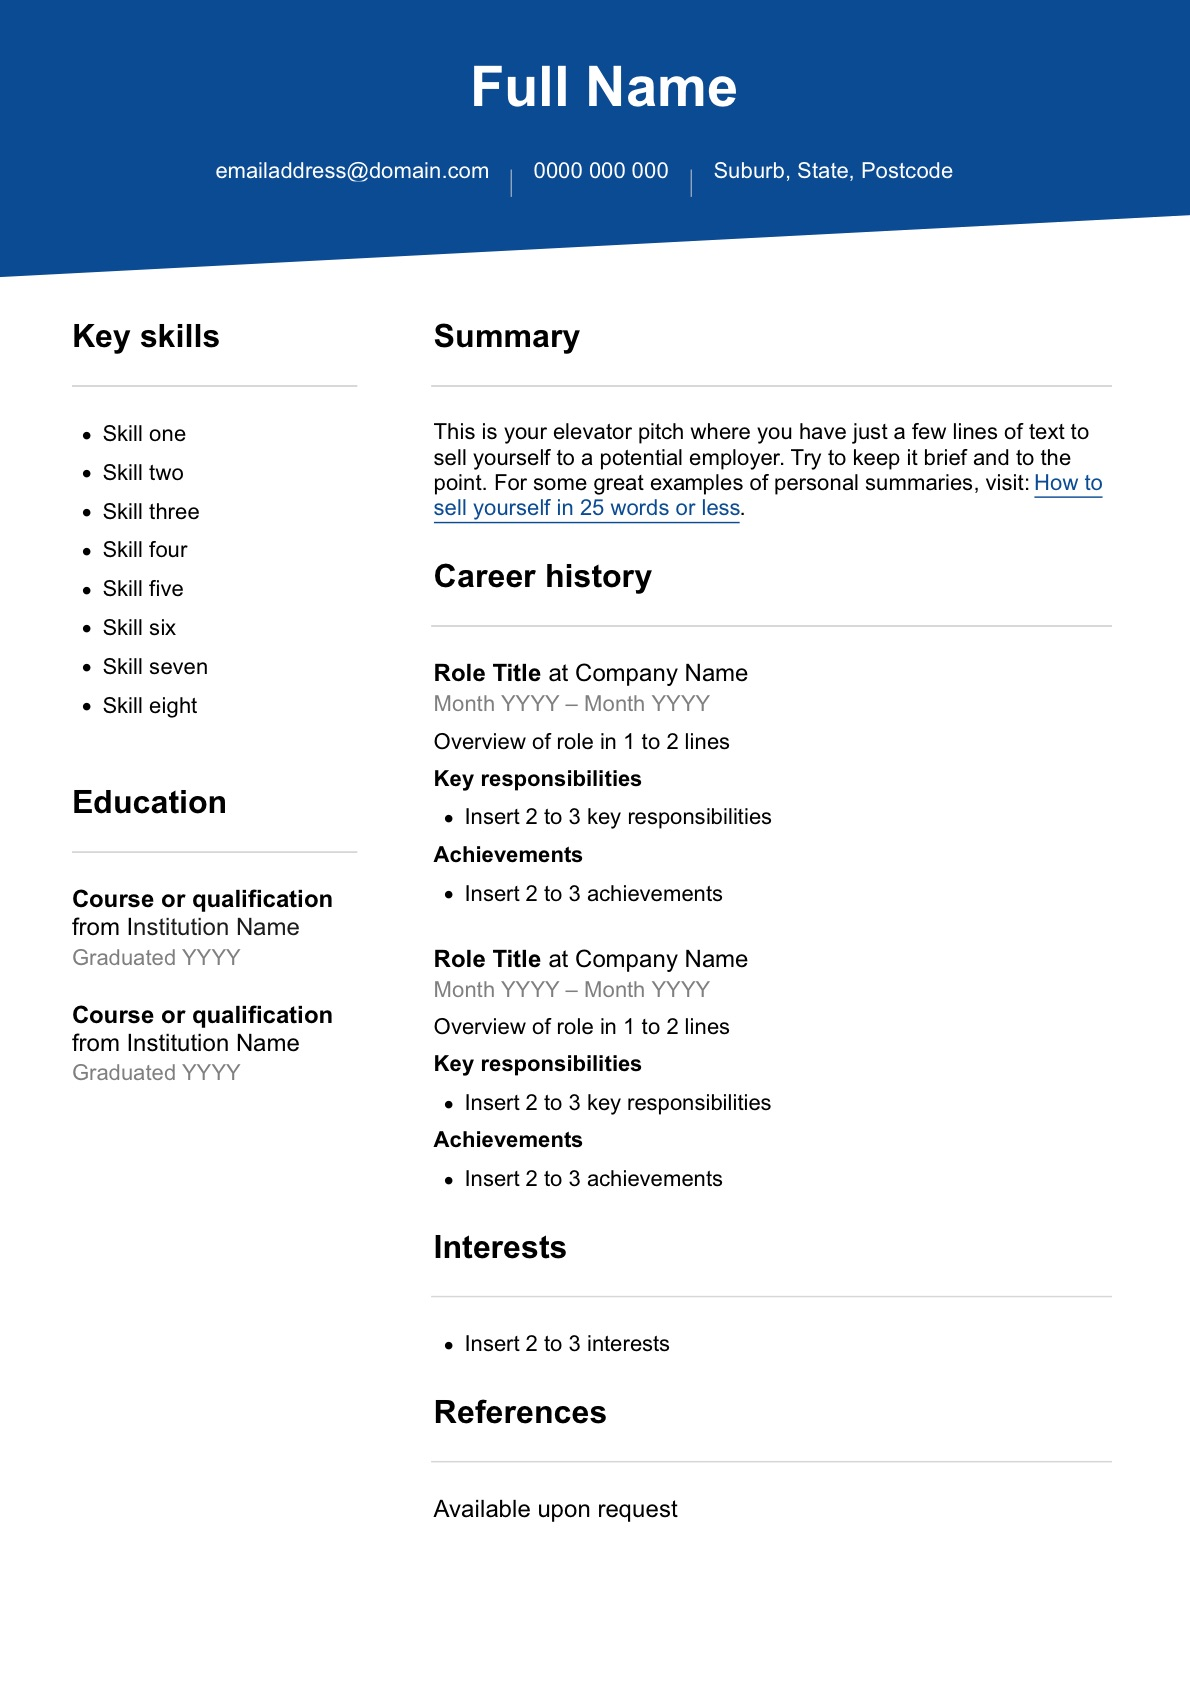 free resume template seek career advice templates for first time job seekers preview Resume Free Resume Templates For First Time Job Seekers